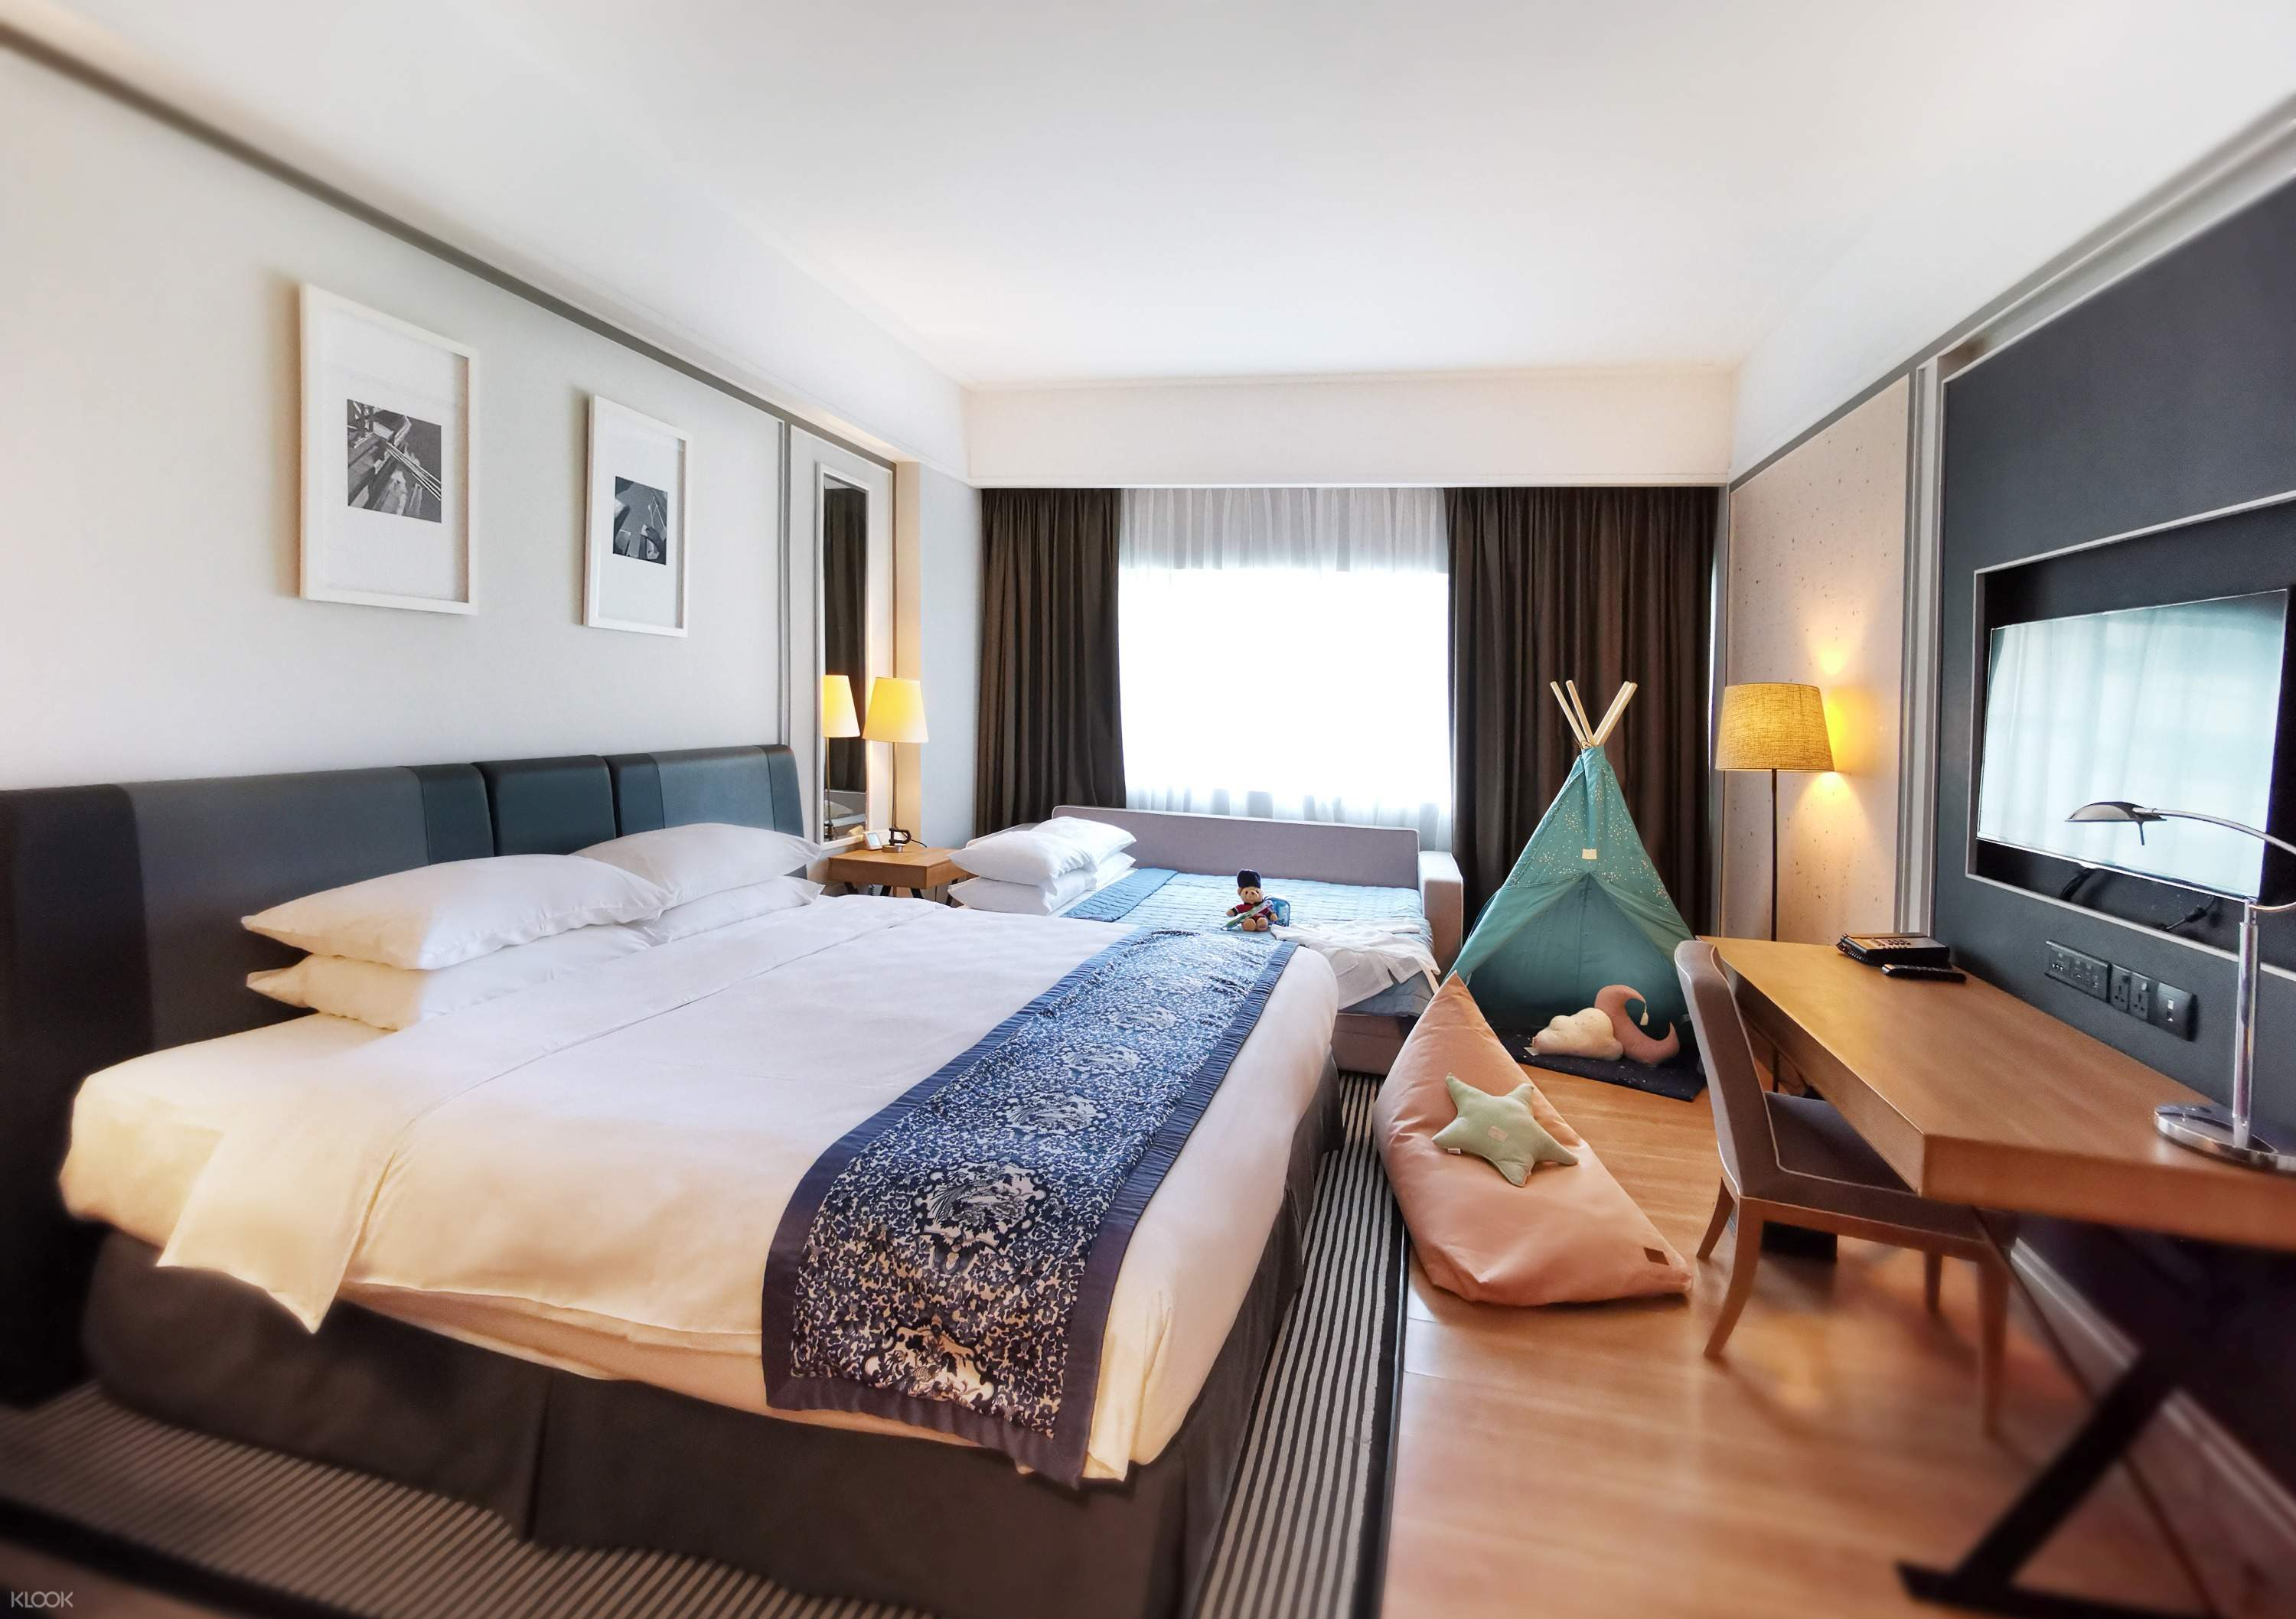 Up to 50% Off | Orchard Hotel Singapore Staycation - Klook Singapore